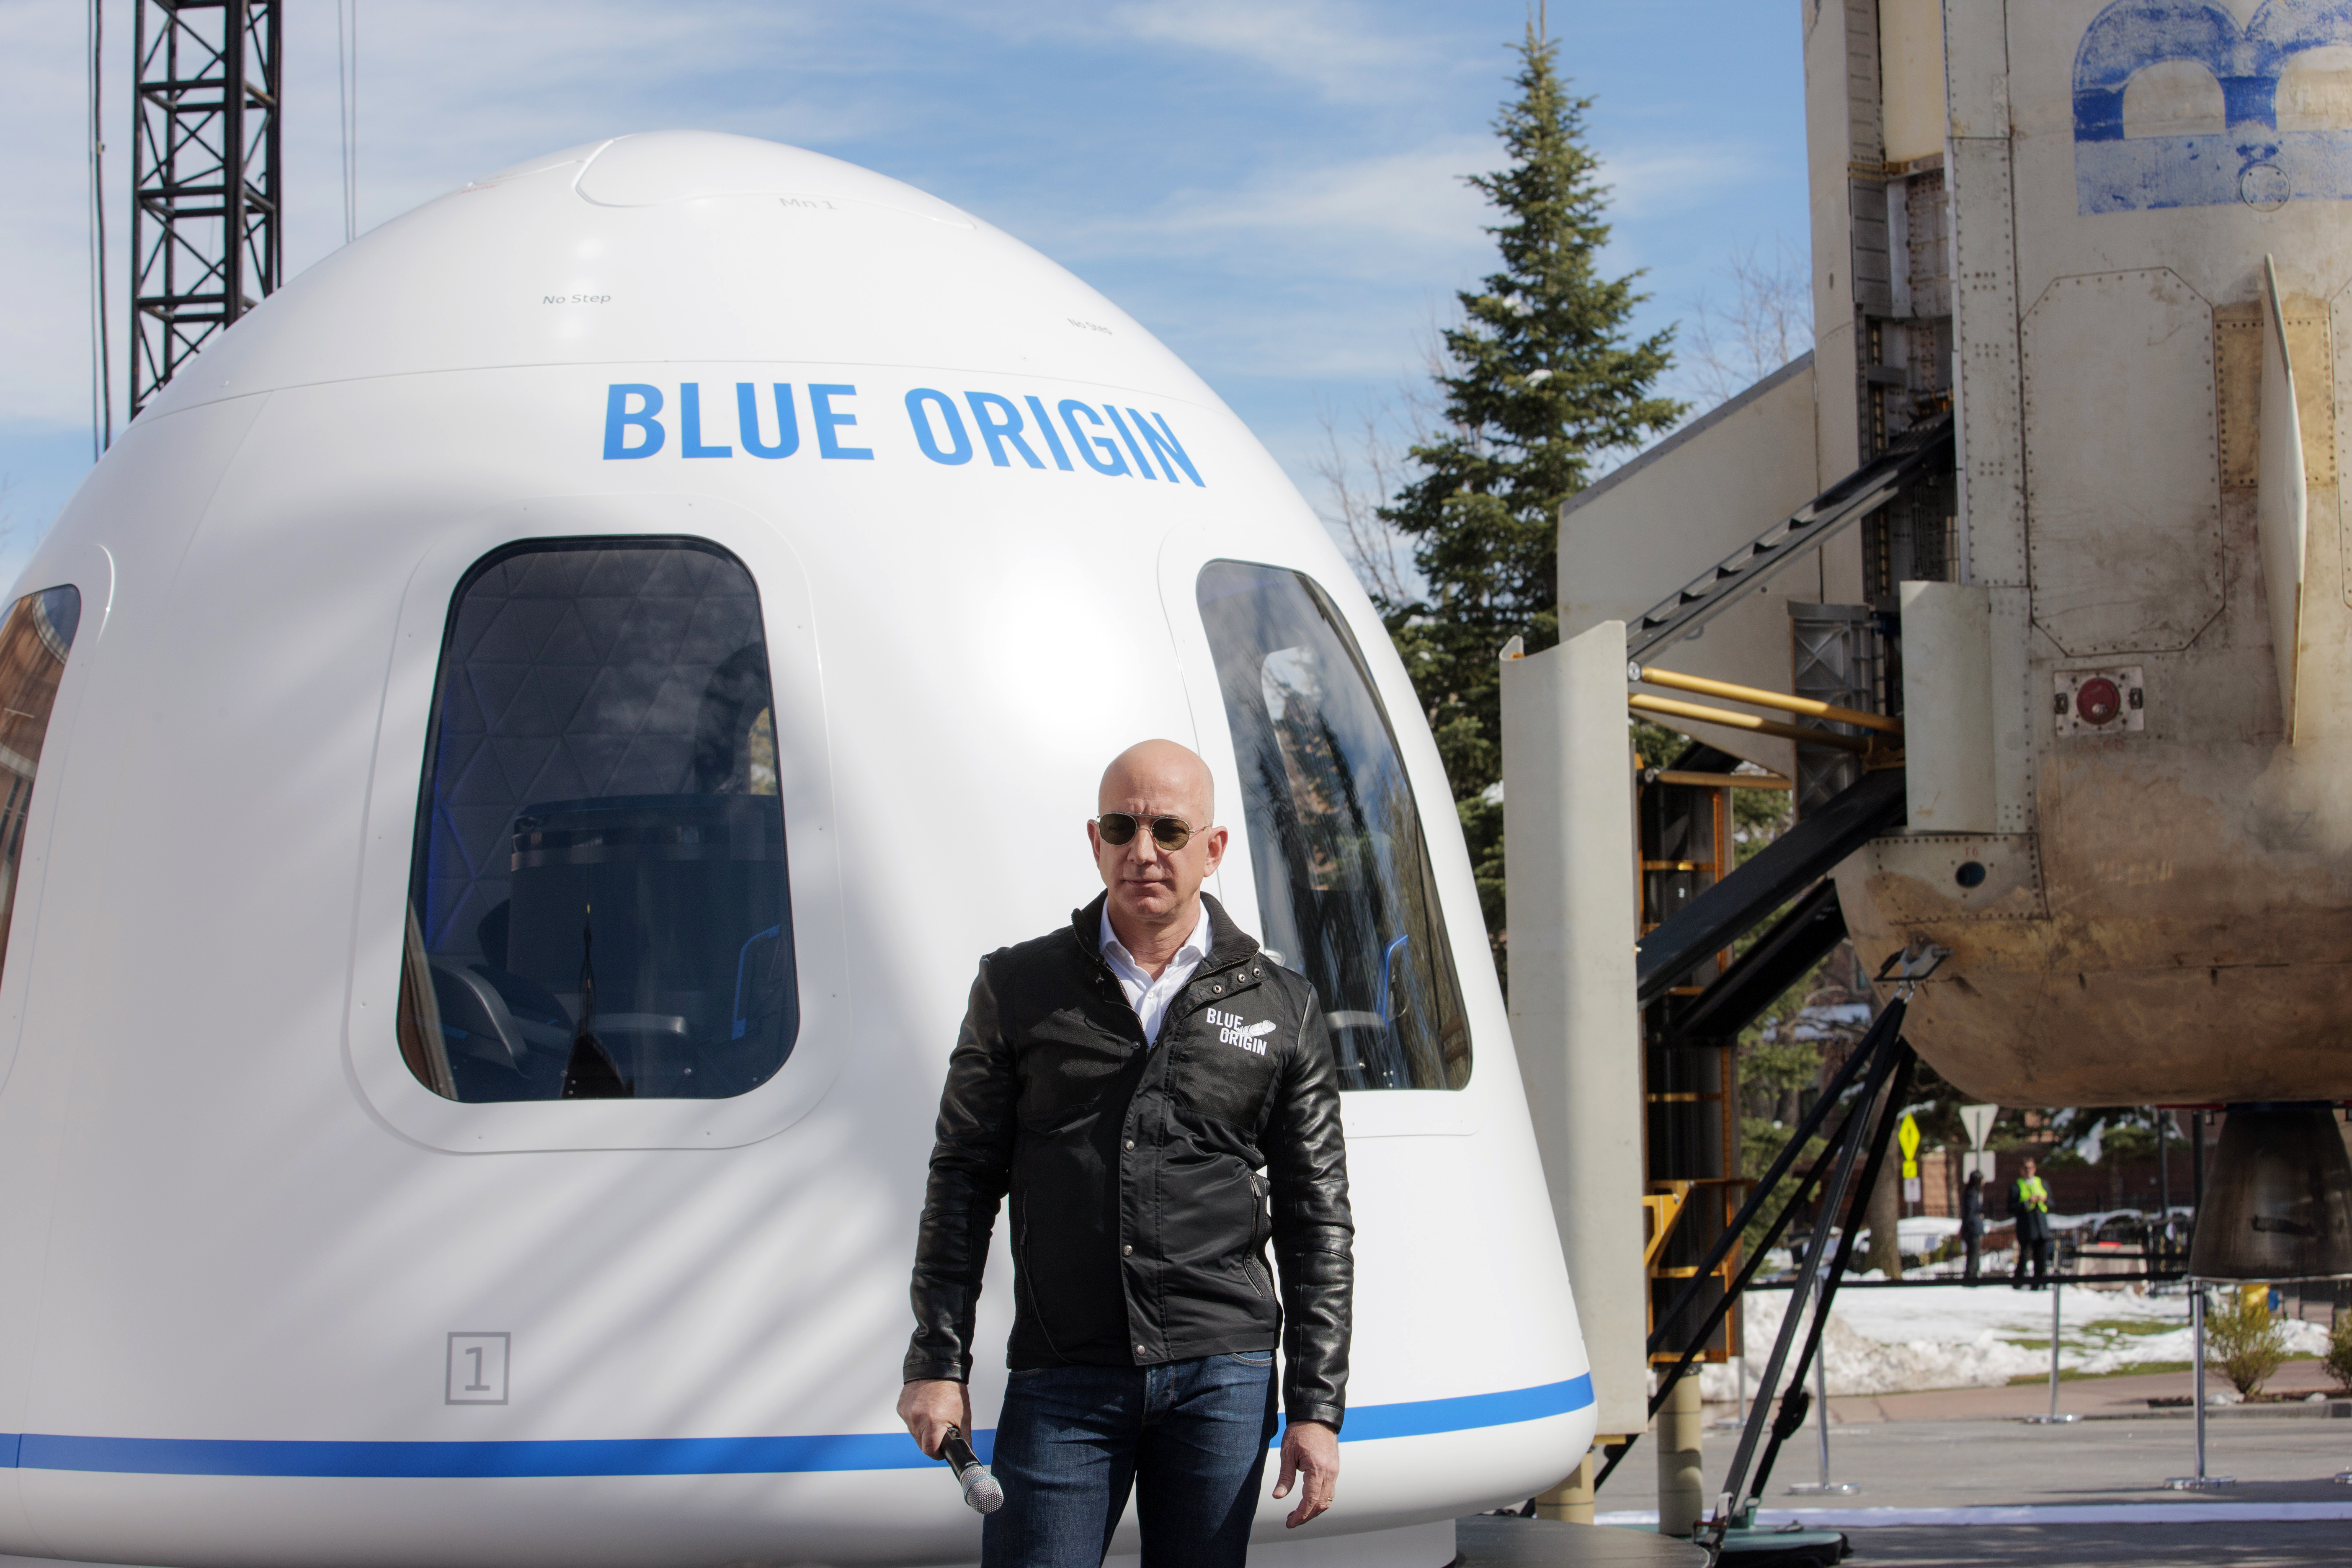 Bezos' launch into space tomorrow could make history in more ways than one